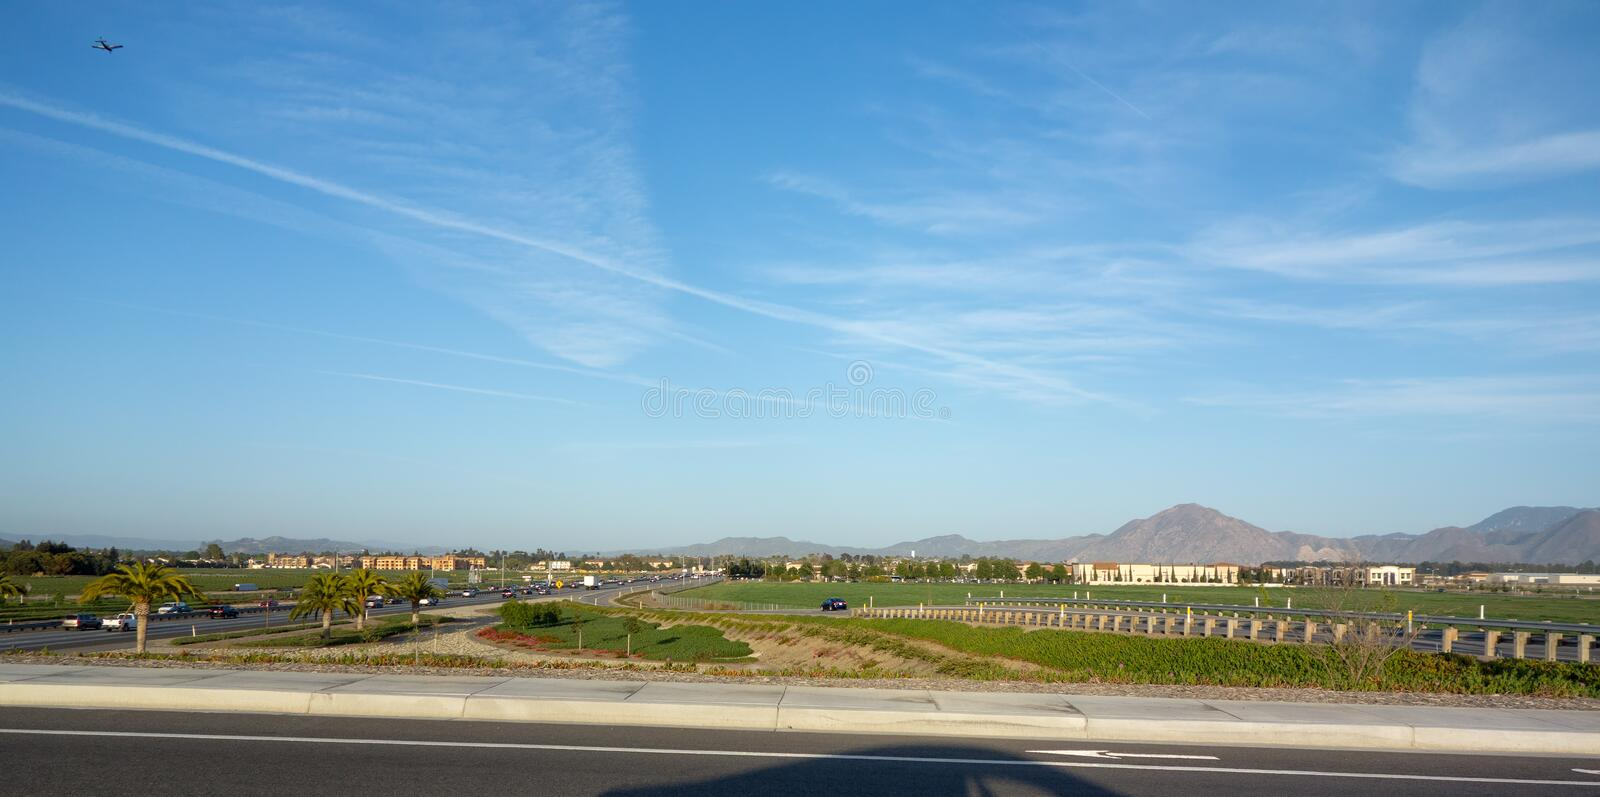 Camarillo North Side, CA. City of Camarillo as seen from its North side along State highway 101, Ventura county, California stock image